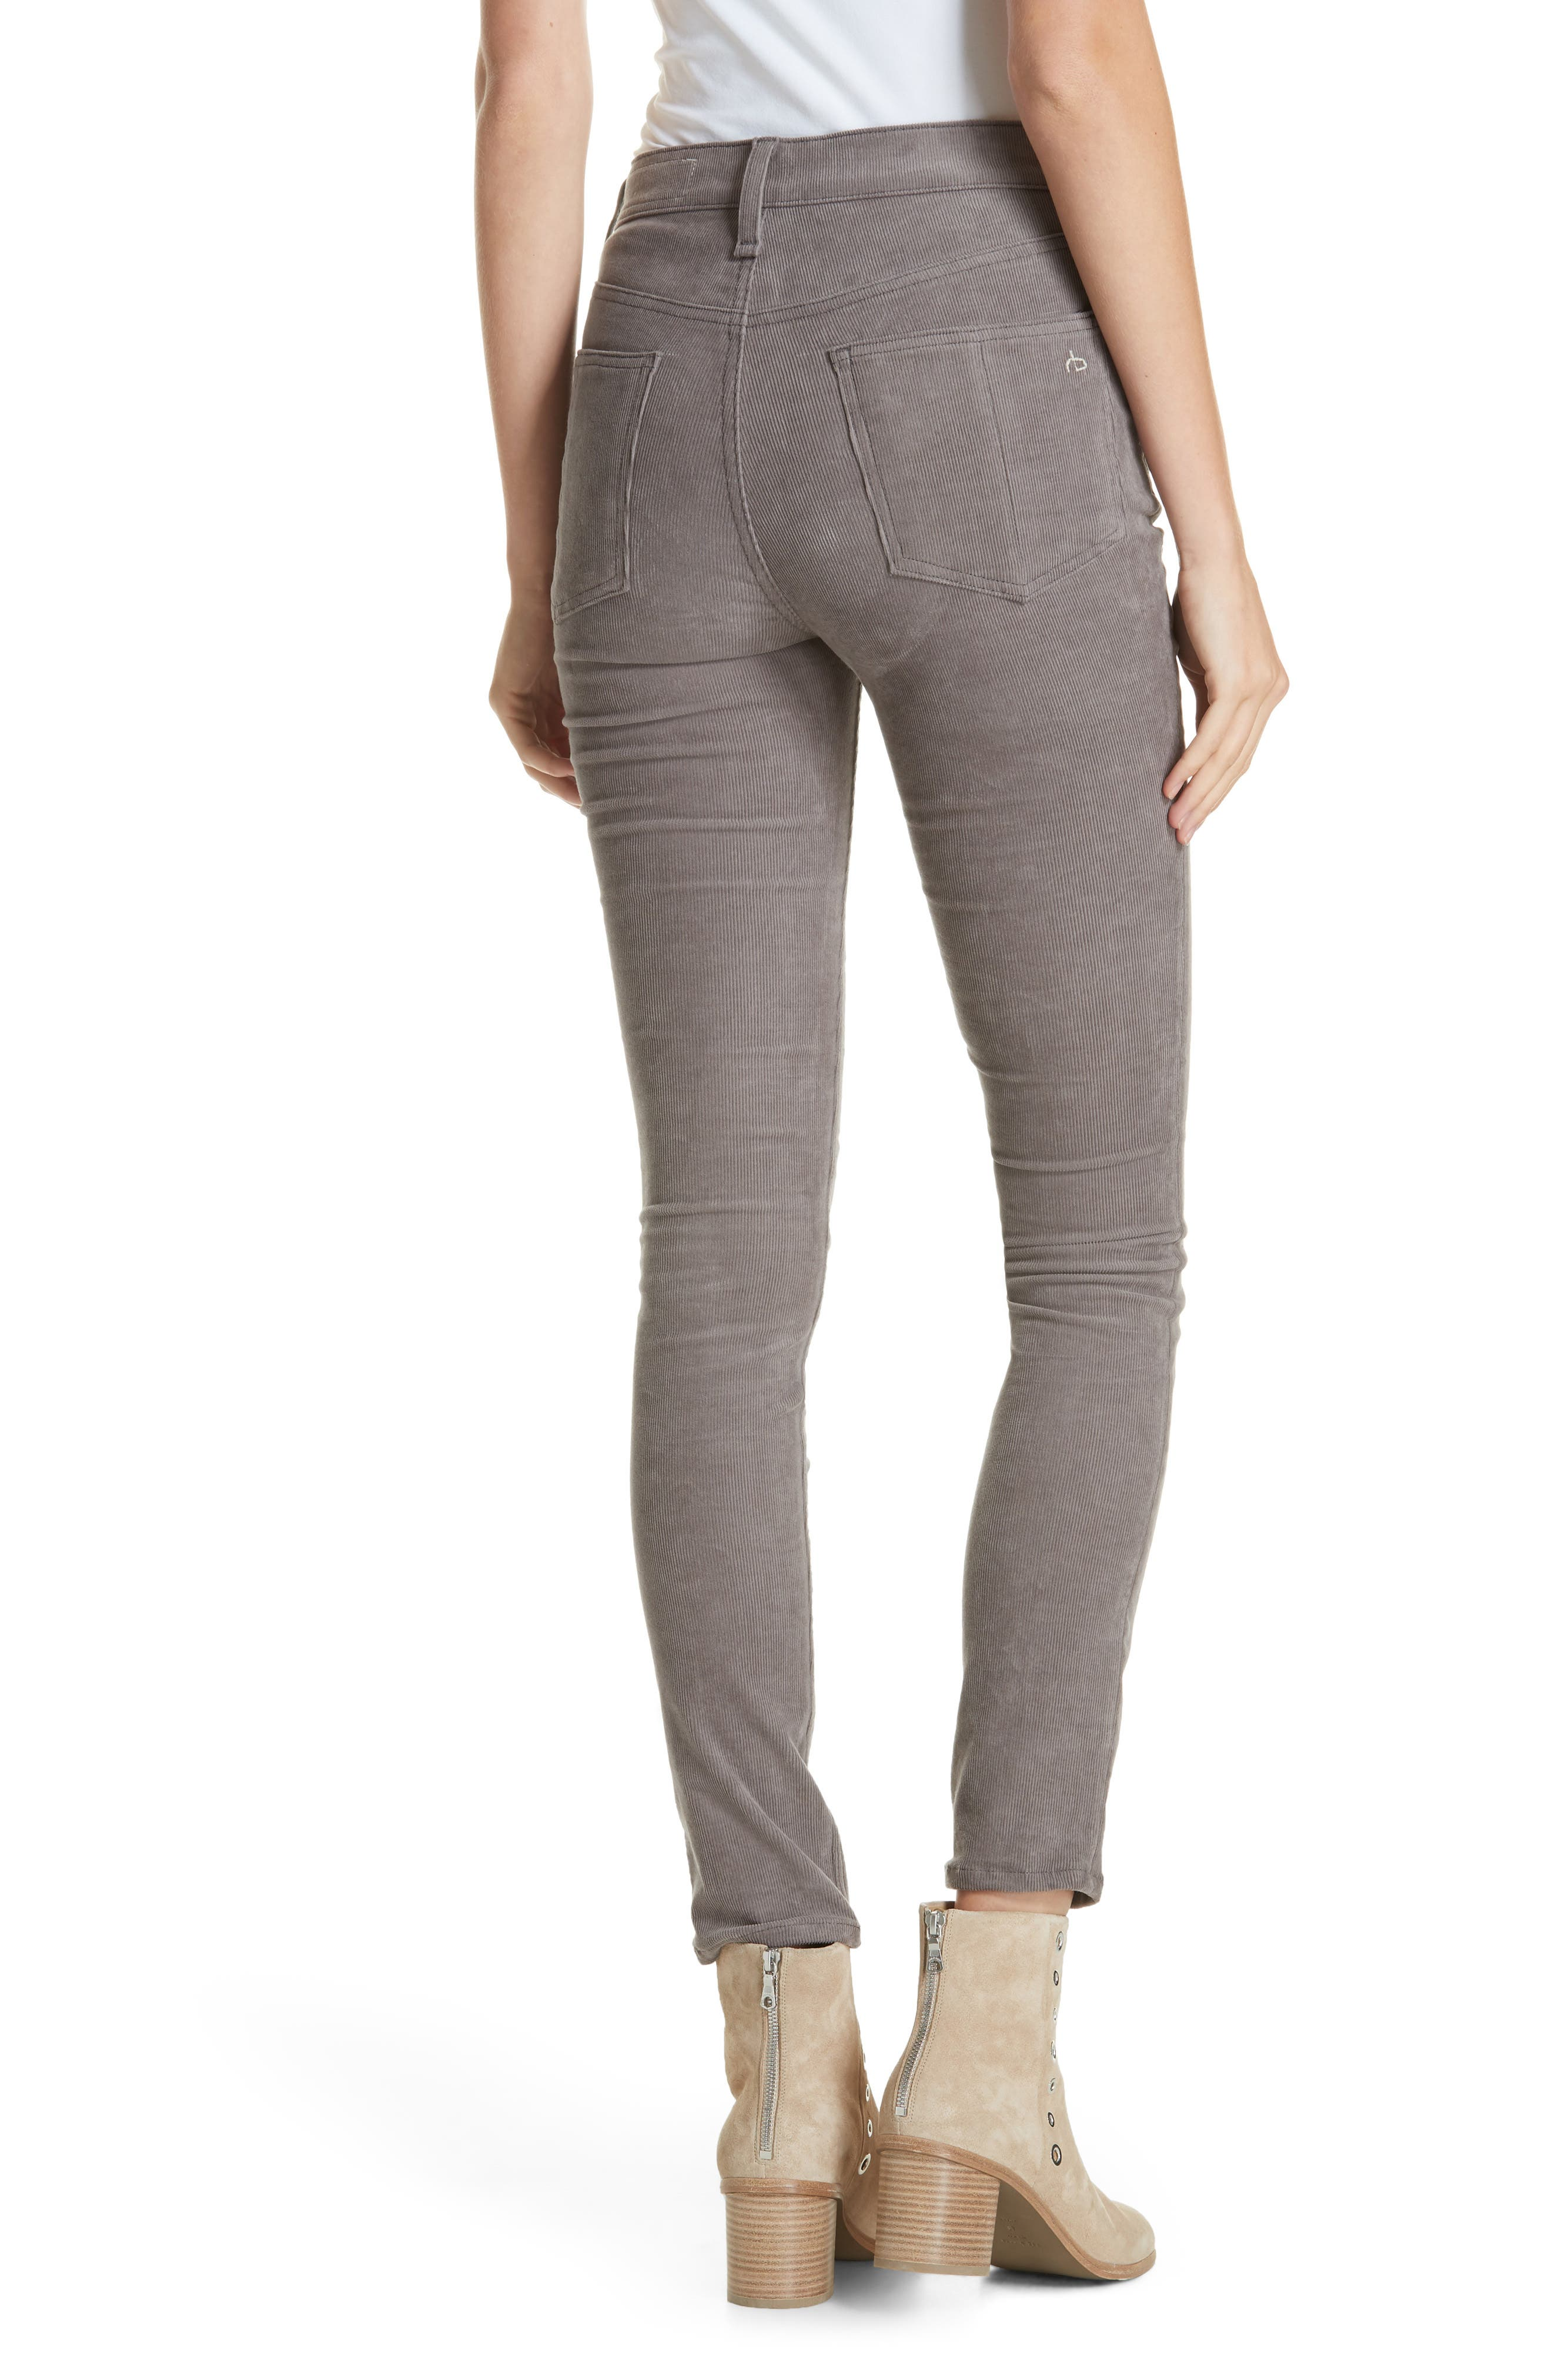 rag & bone High Waist Ankle Skinny Corduroy Pants,                             Alternate thumbnail 2, color,                             021